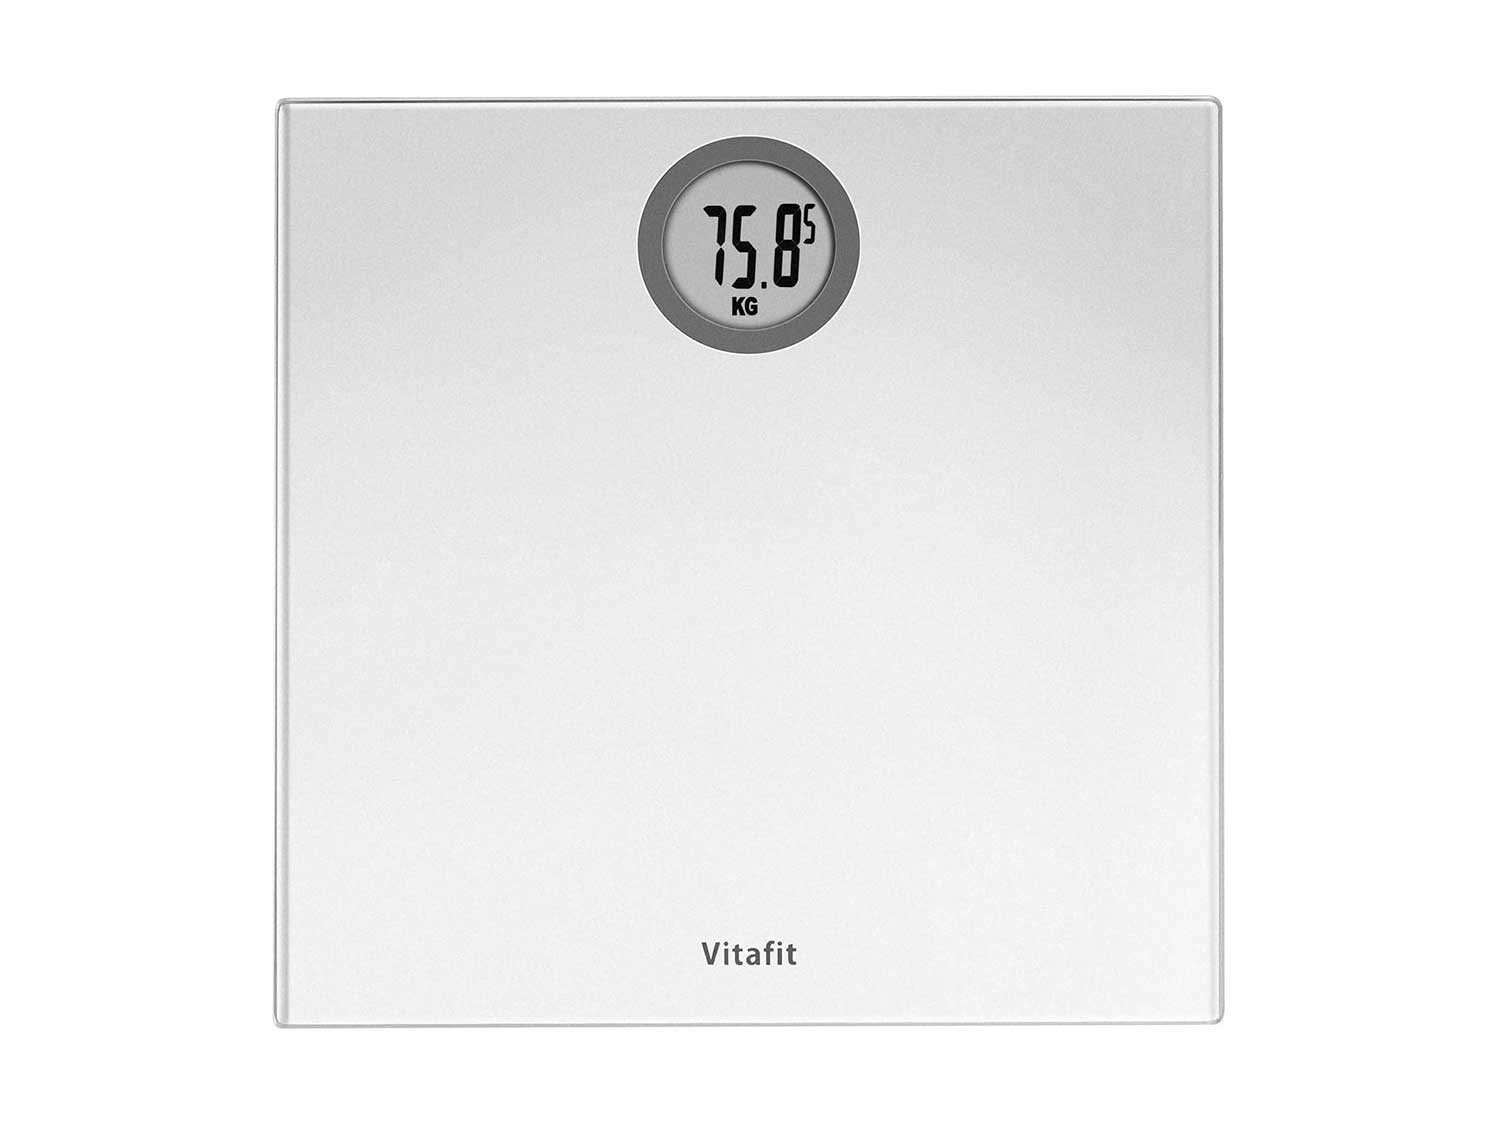 Vitafit Digital Body Weight Bathroom Scales Weighing Scales with Step-On Technology, LCD Display(Stone/kgs/lbs),Tempered Glass Silver